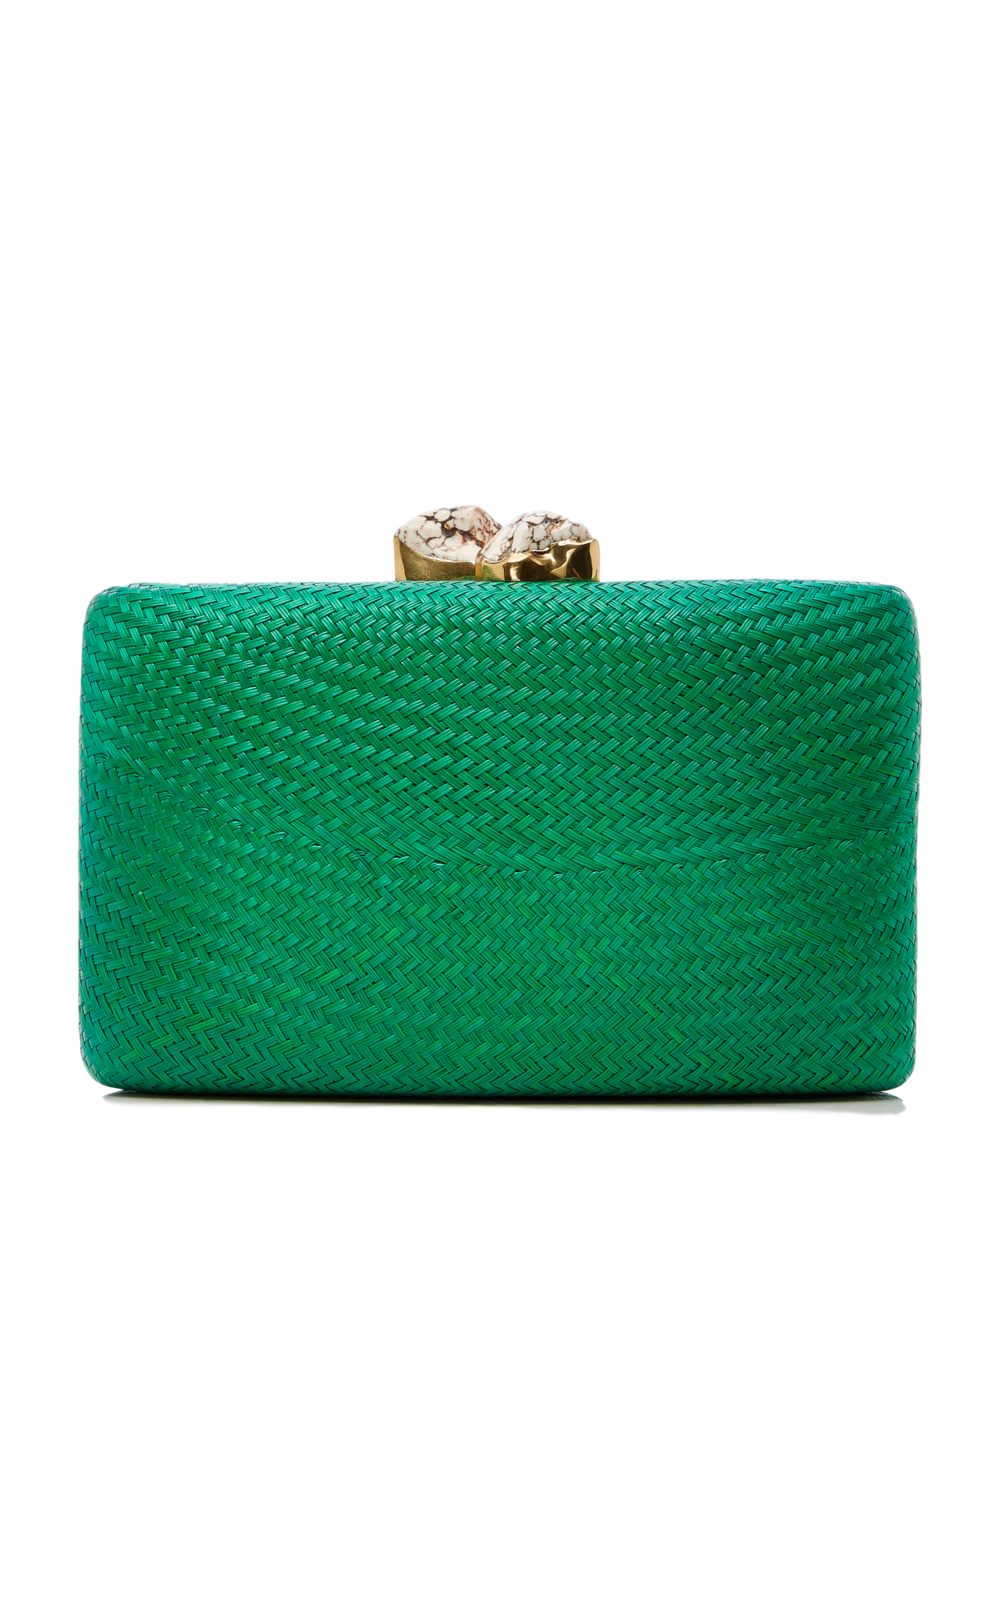 https-__www.modaoperandi.com_kayu-pf17_jen-embellished-woven-straw-clutch_color=green&material=Straw_clipped_rev_1.png